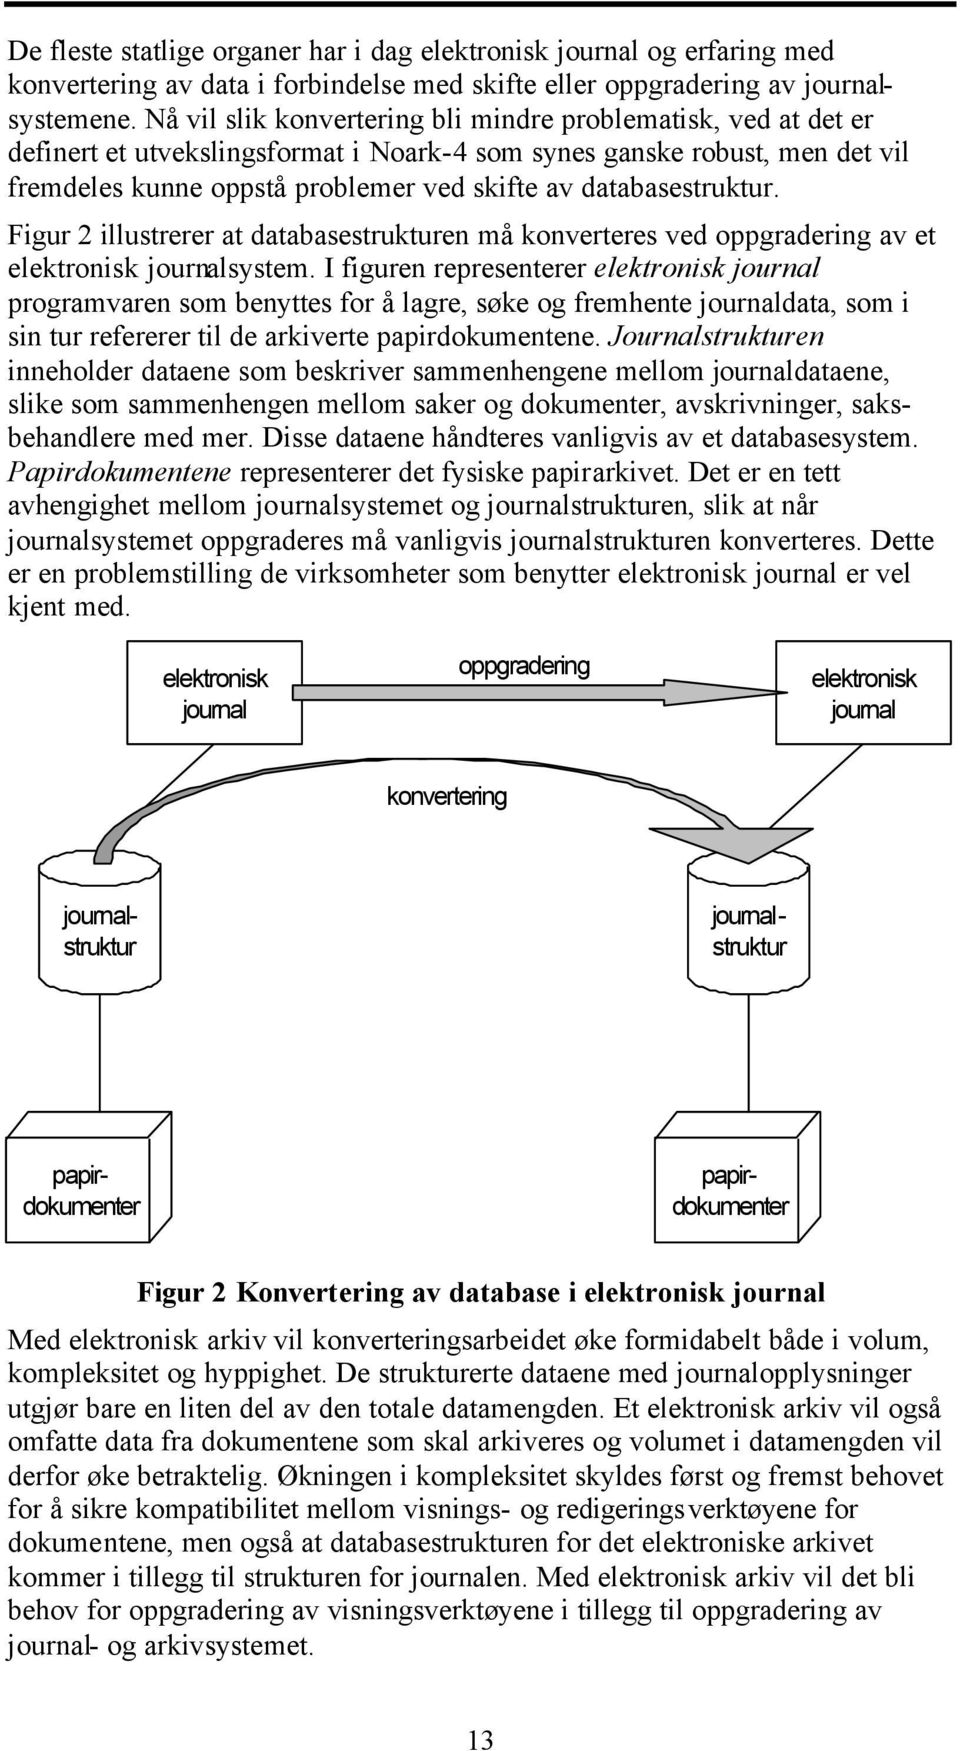 databasestruktur. Figur 2 illustrerer at databasestrukturen må konverteres ved oppgradering av et elektronisk journalsystem.